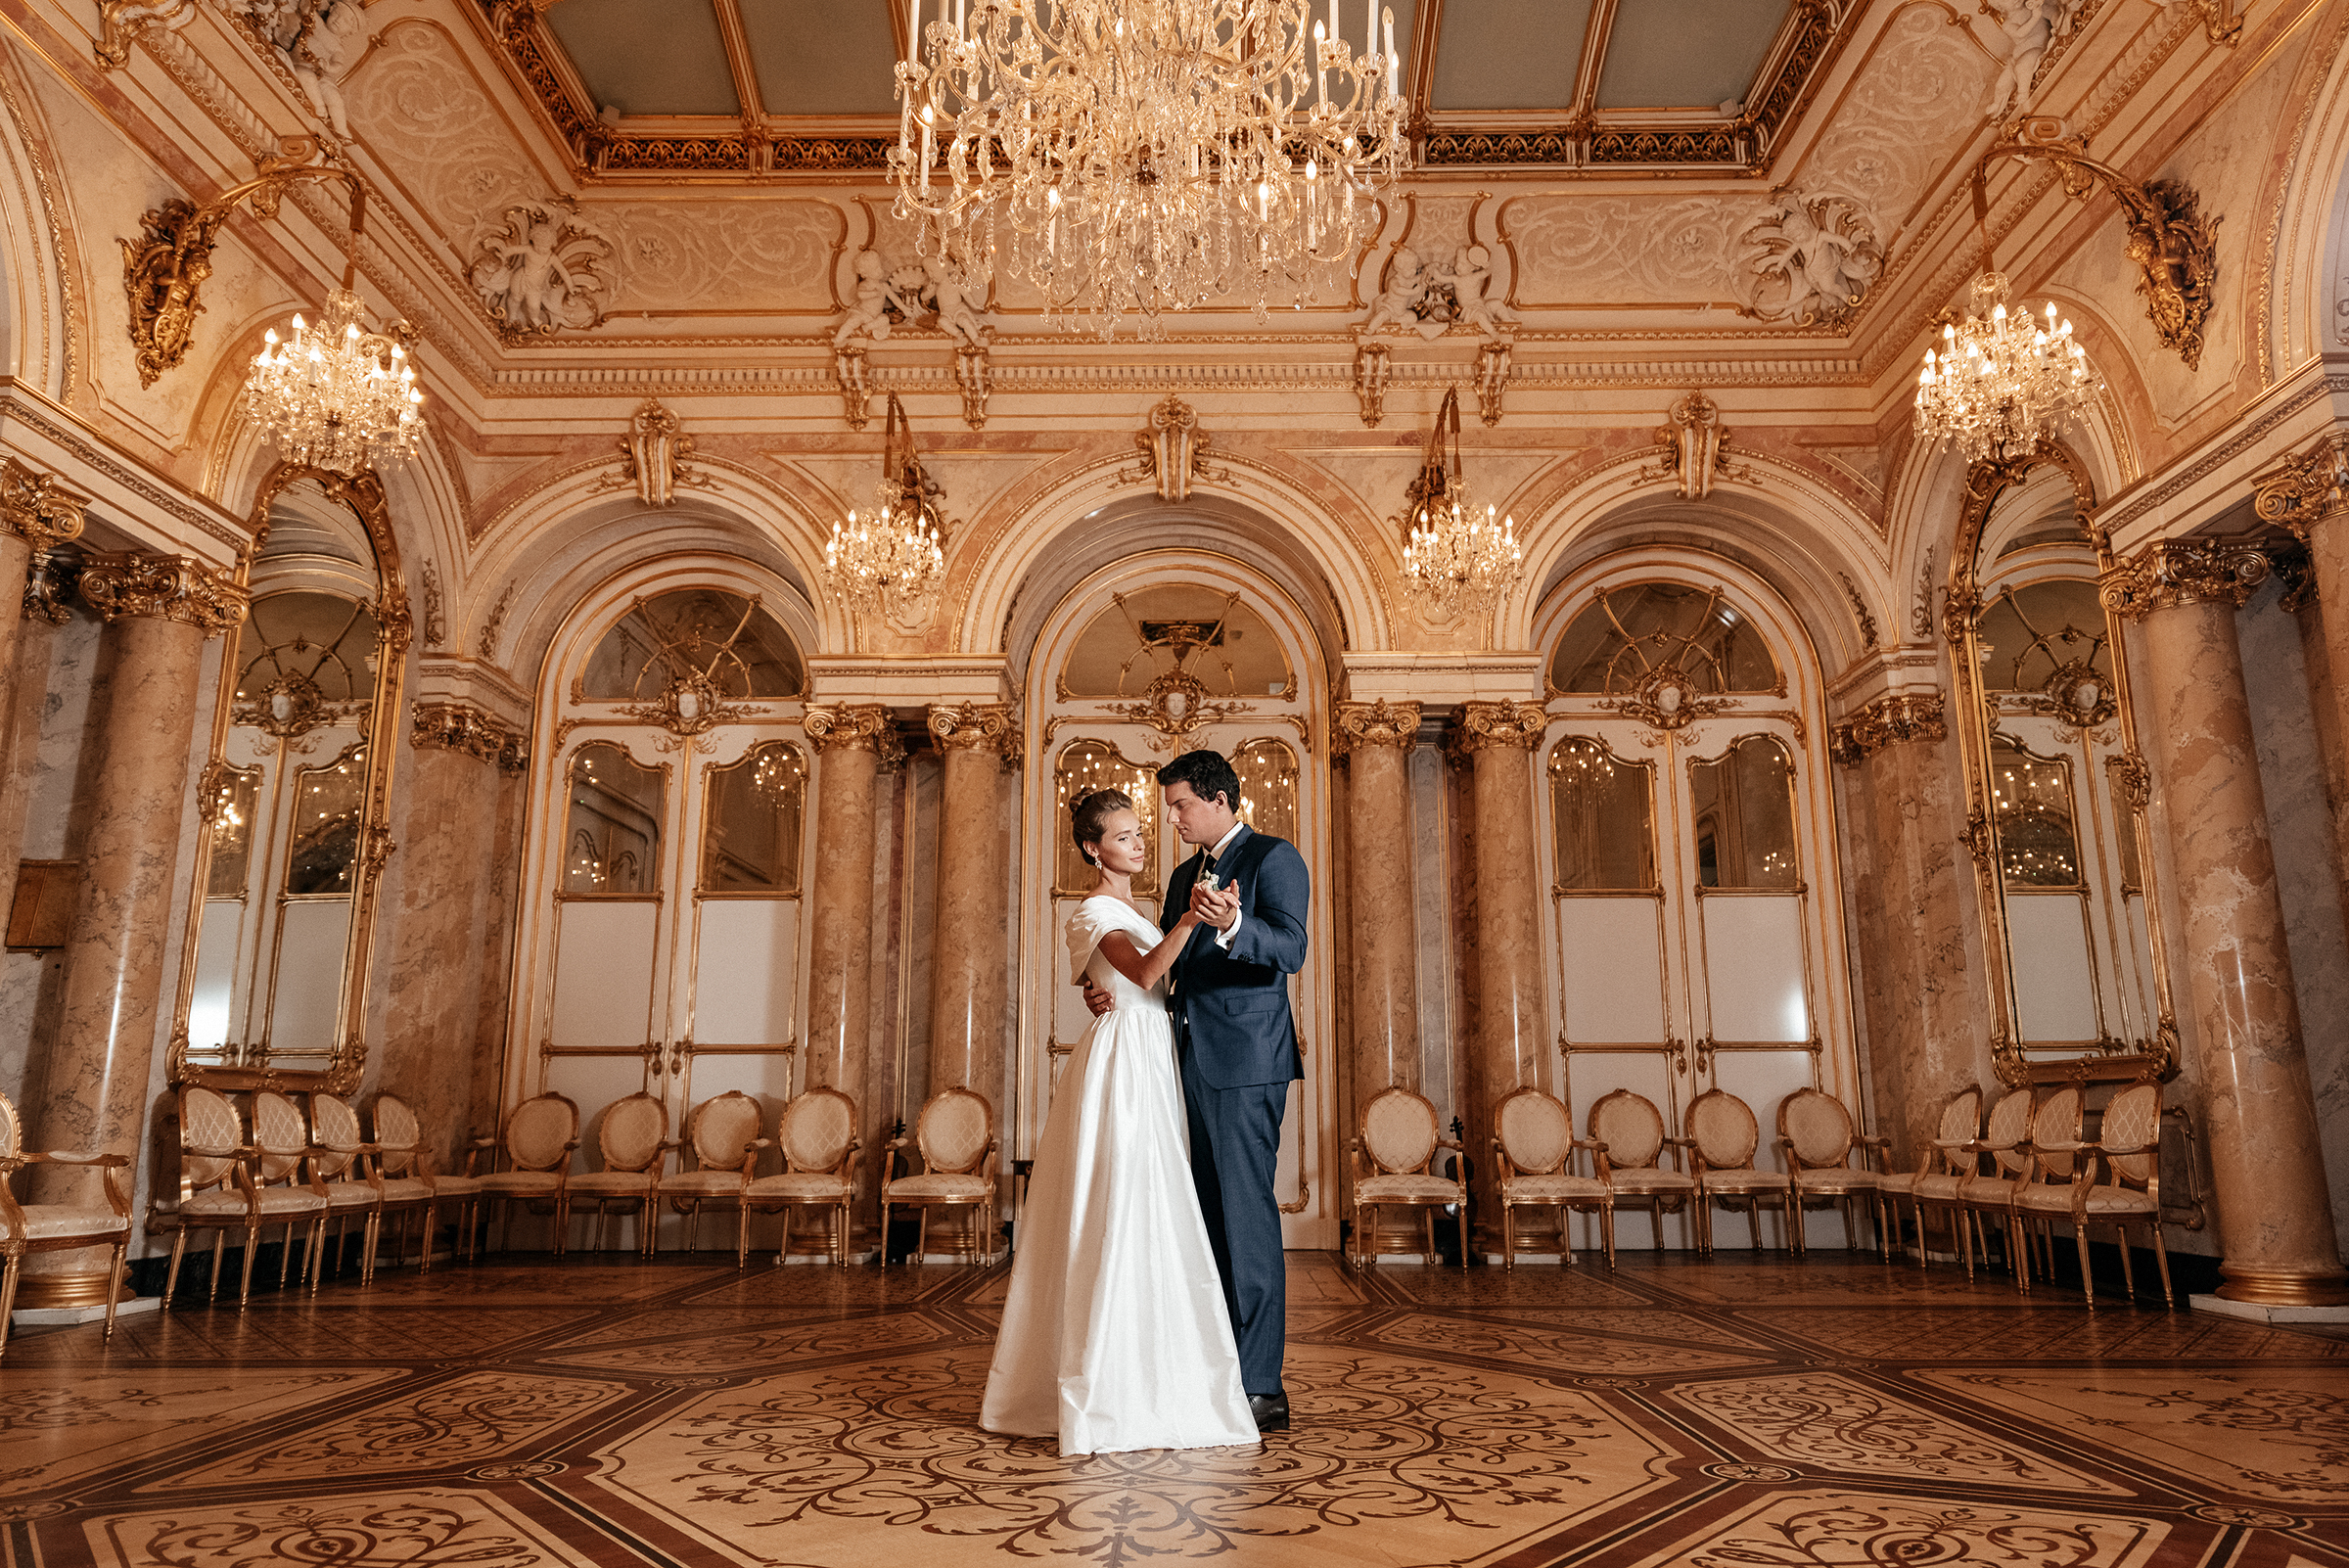 My 10 favorite locations for a wedding photoshoot in Vienna